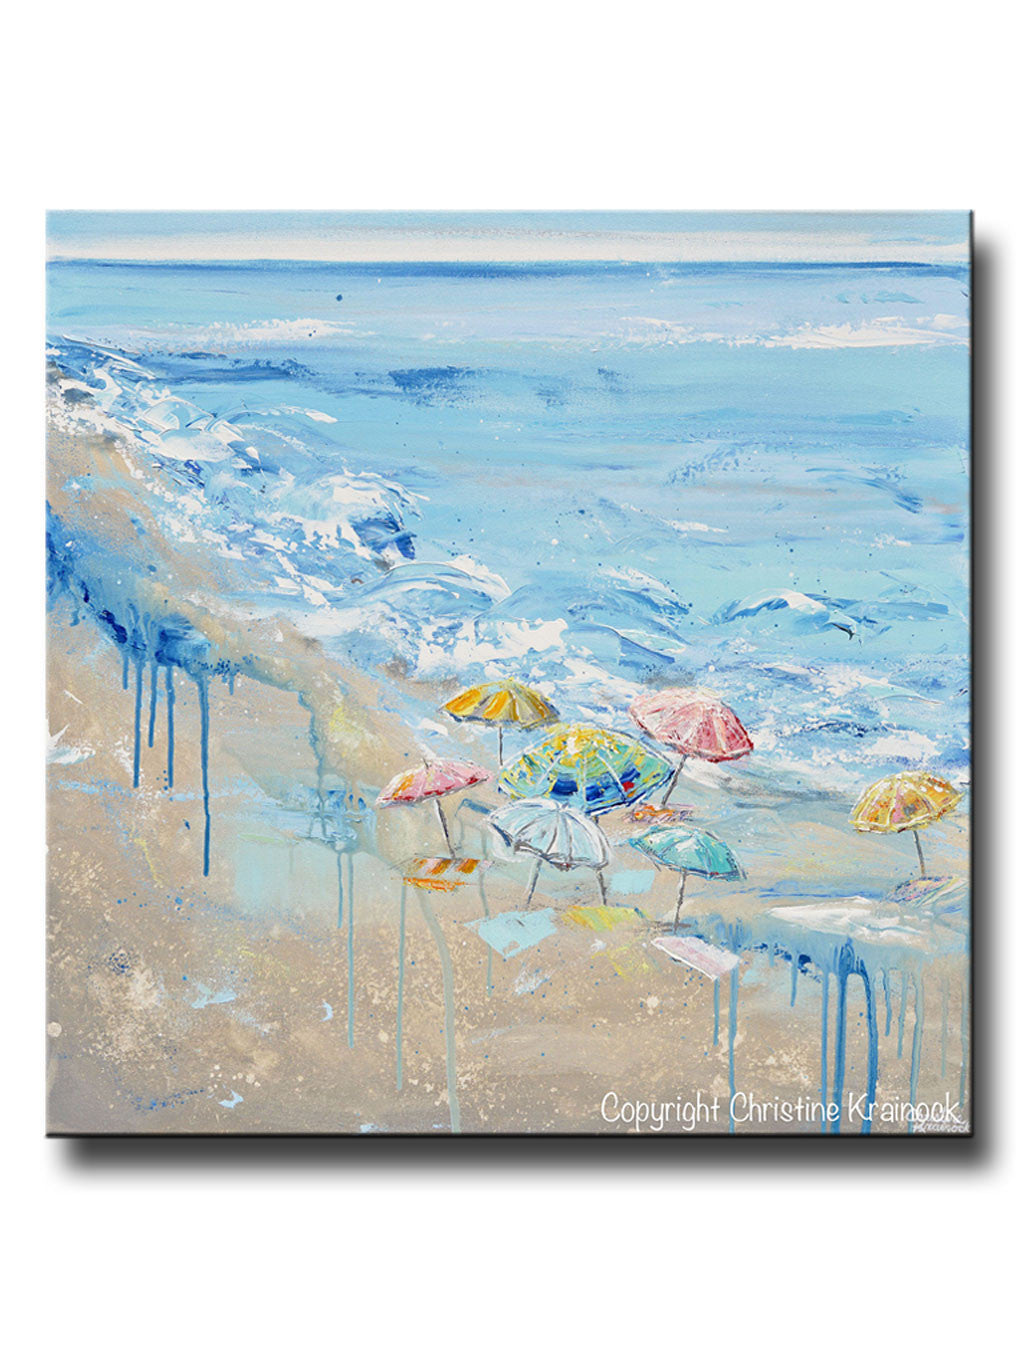 Original art abstract painting beach umbrellas colorful blue white beige large ocean coastal decor wall art